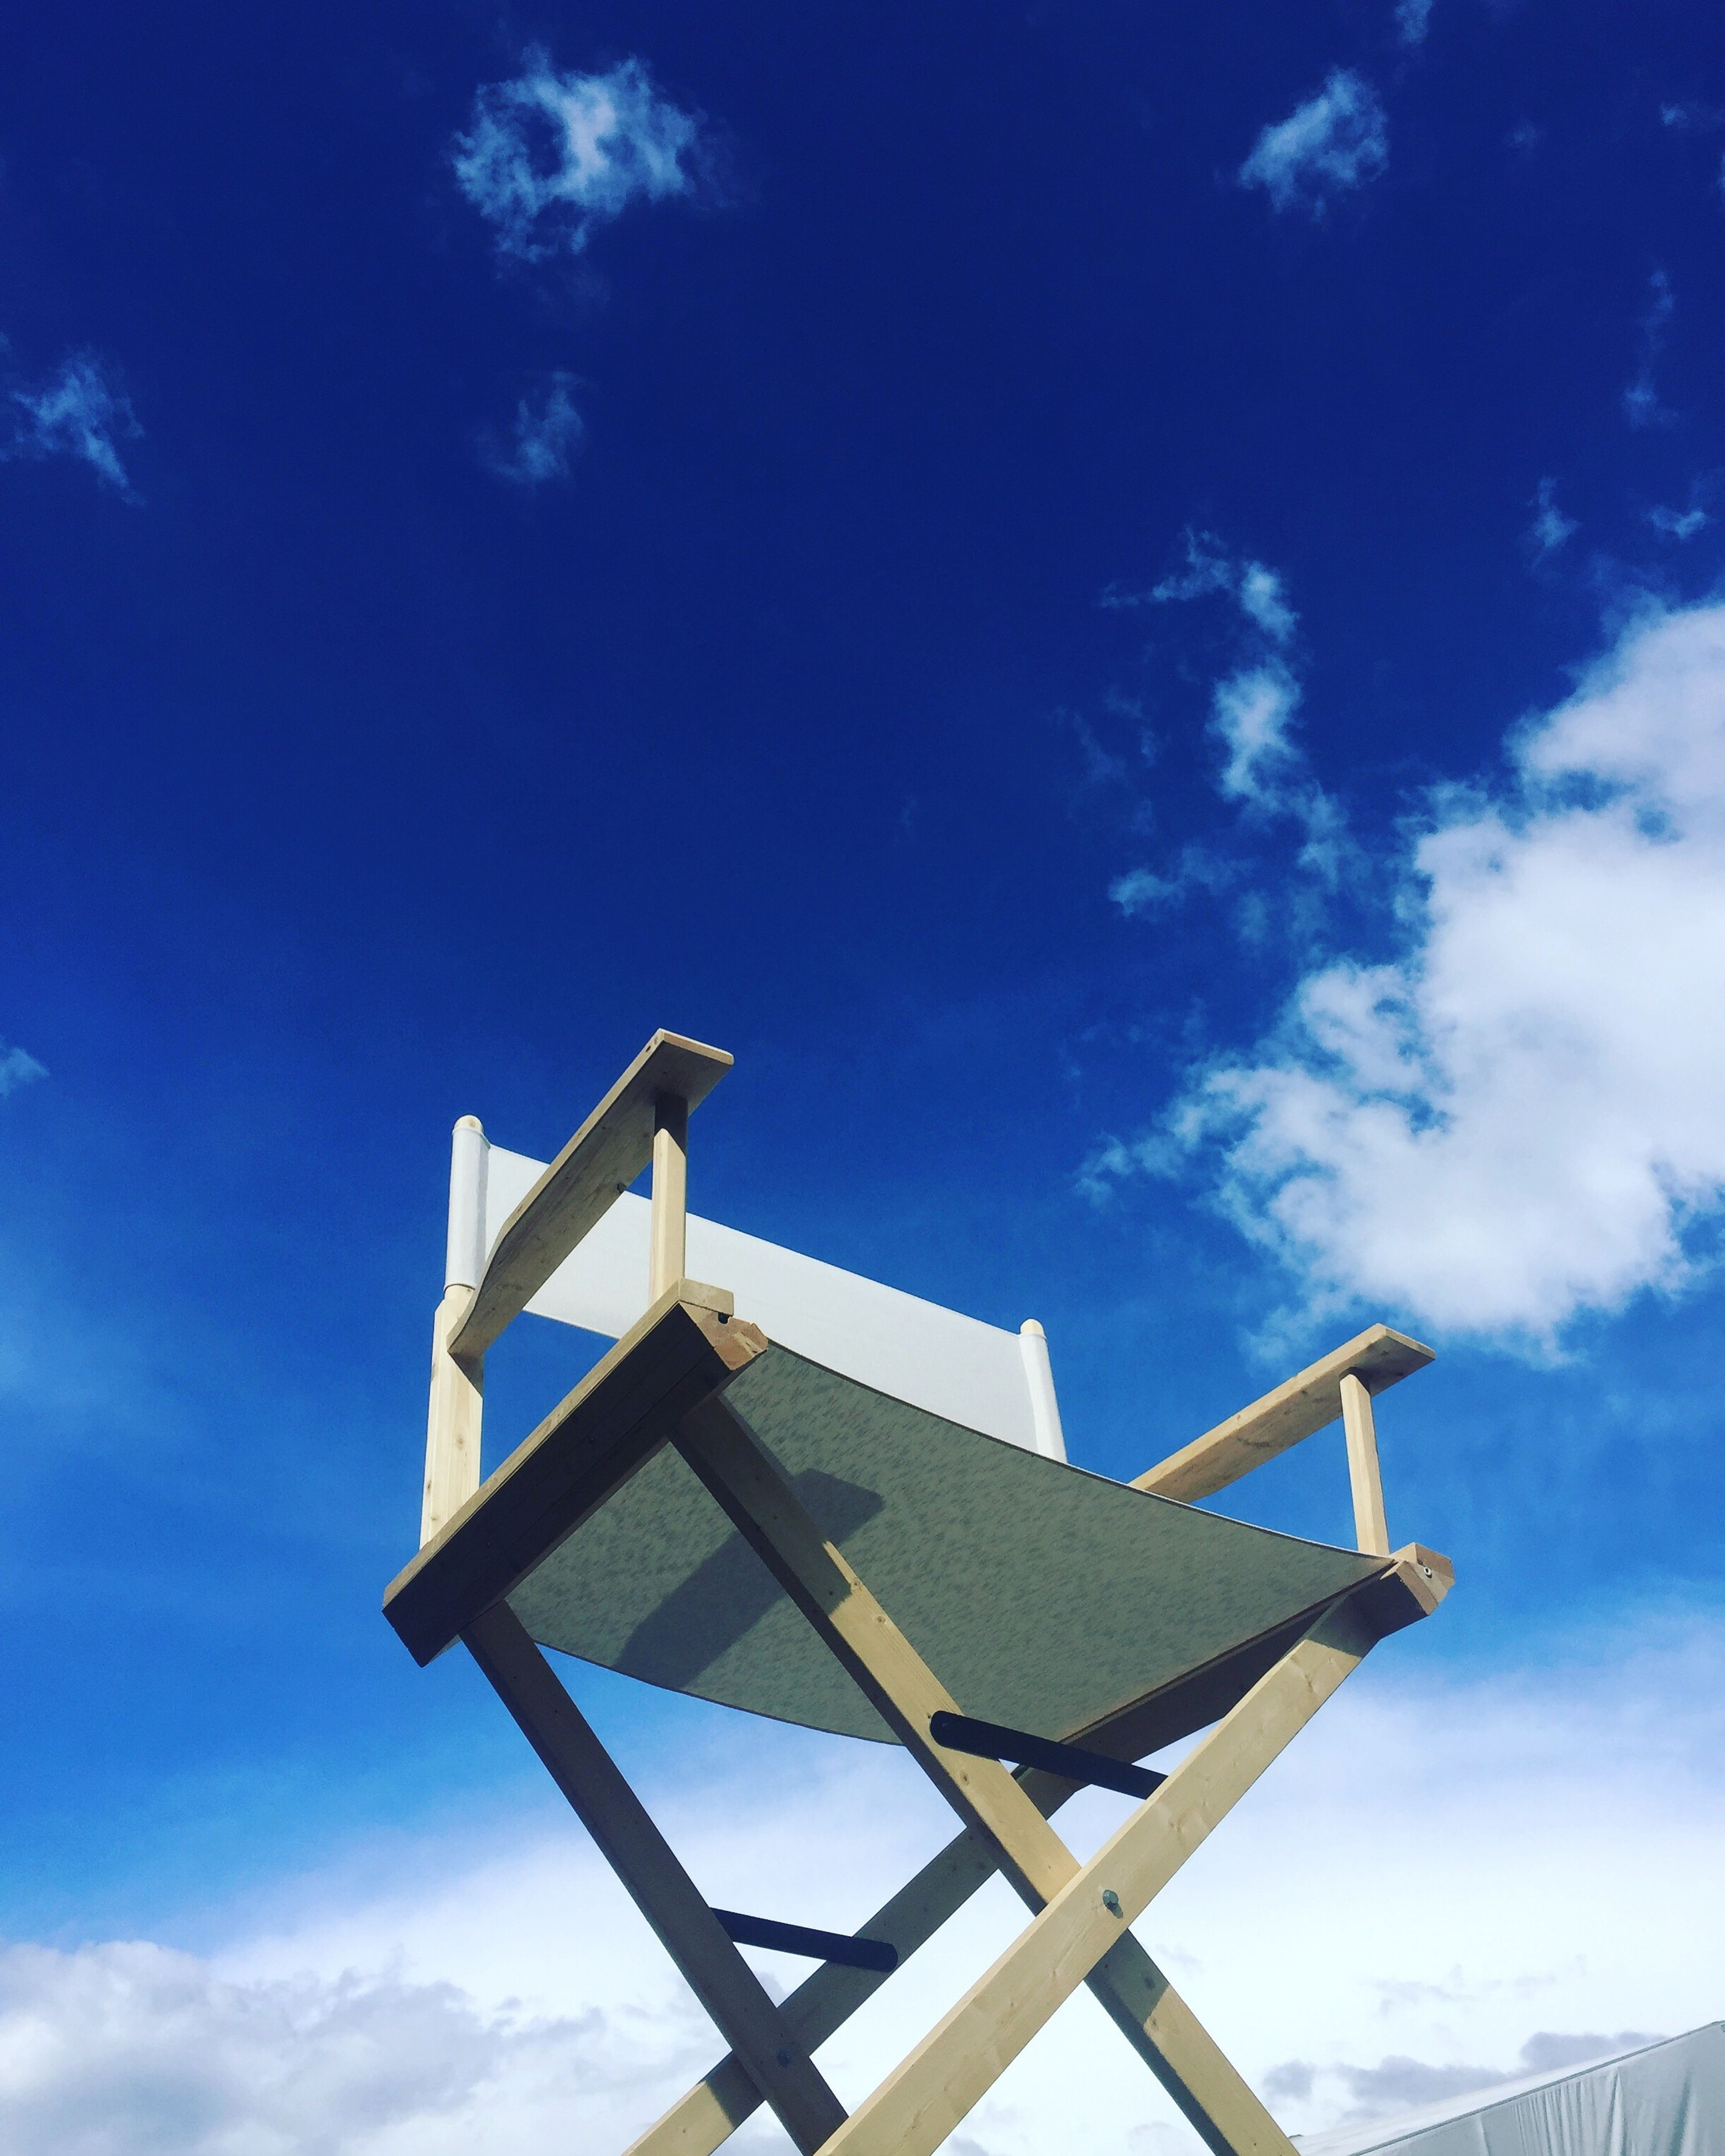 sky, low angle view, cloud - sky, day, no people, blue, outdoors